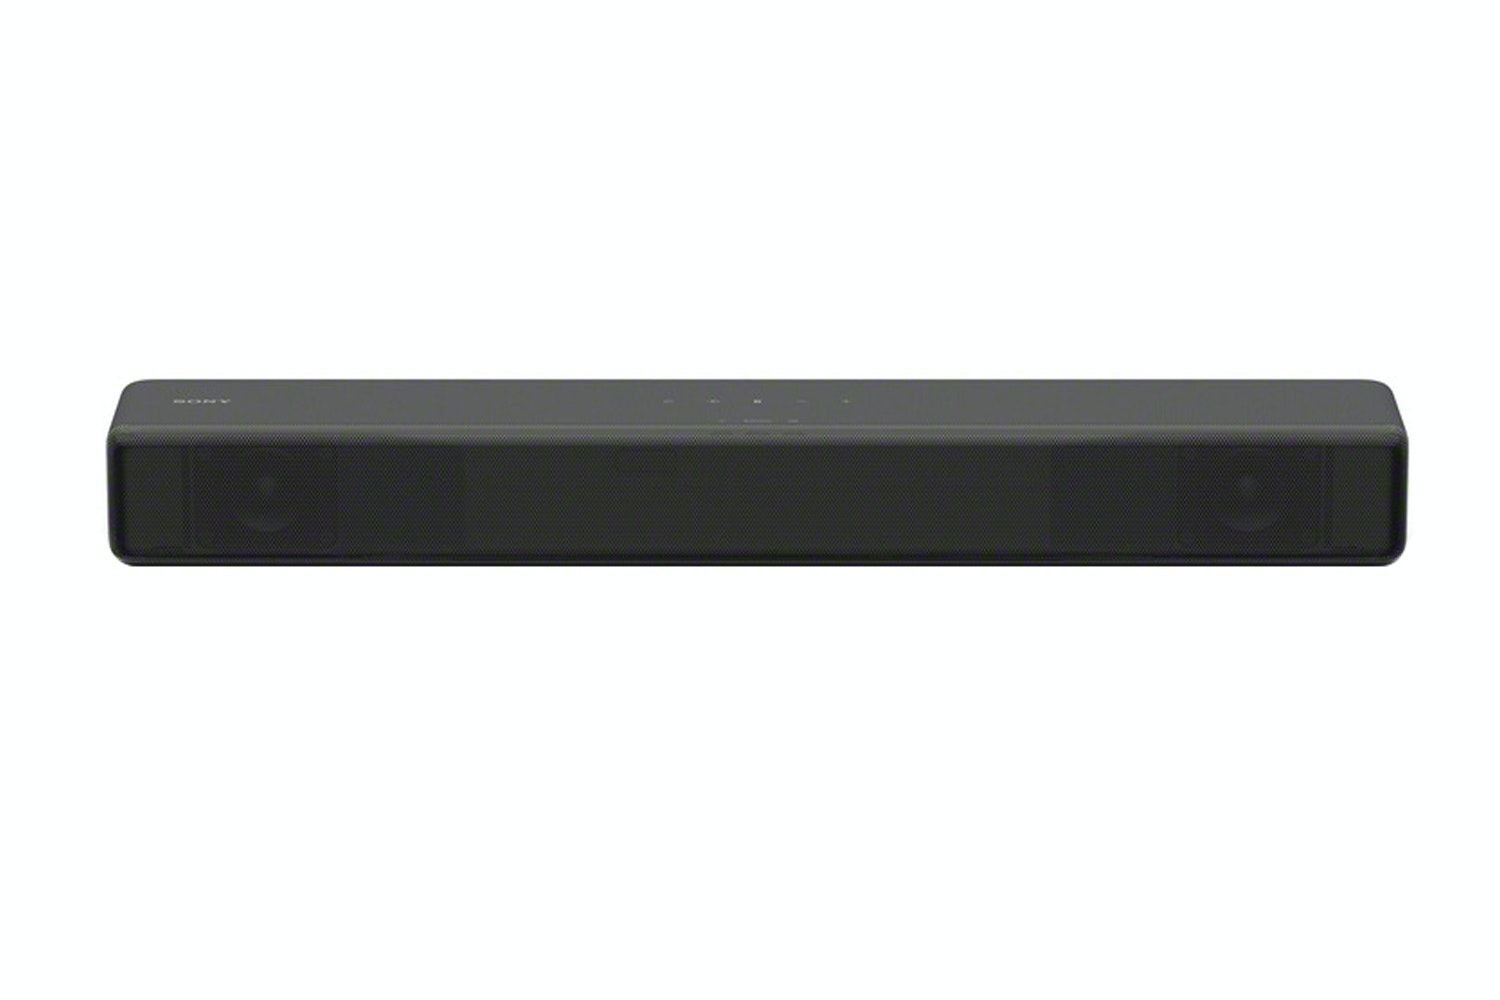 Sony HT-SF200 2.1ch Compact Single Soundbar | Black